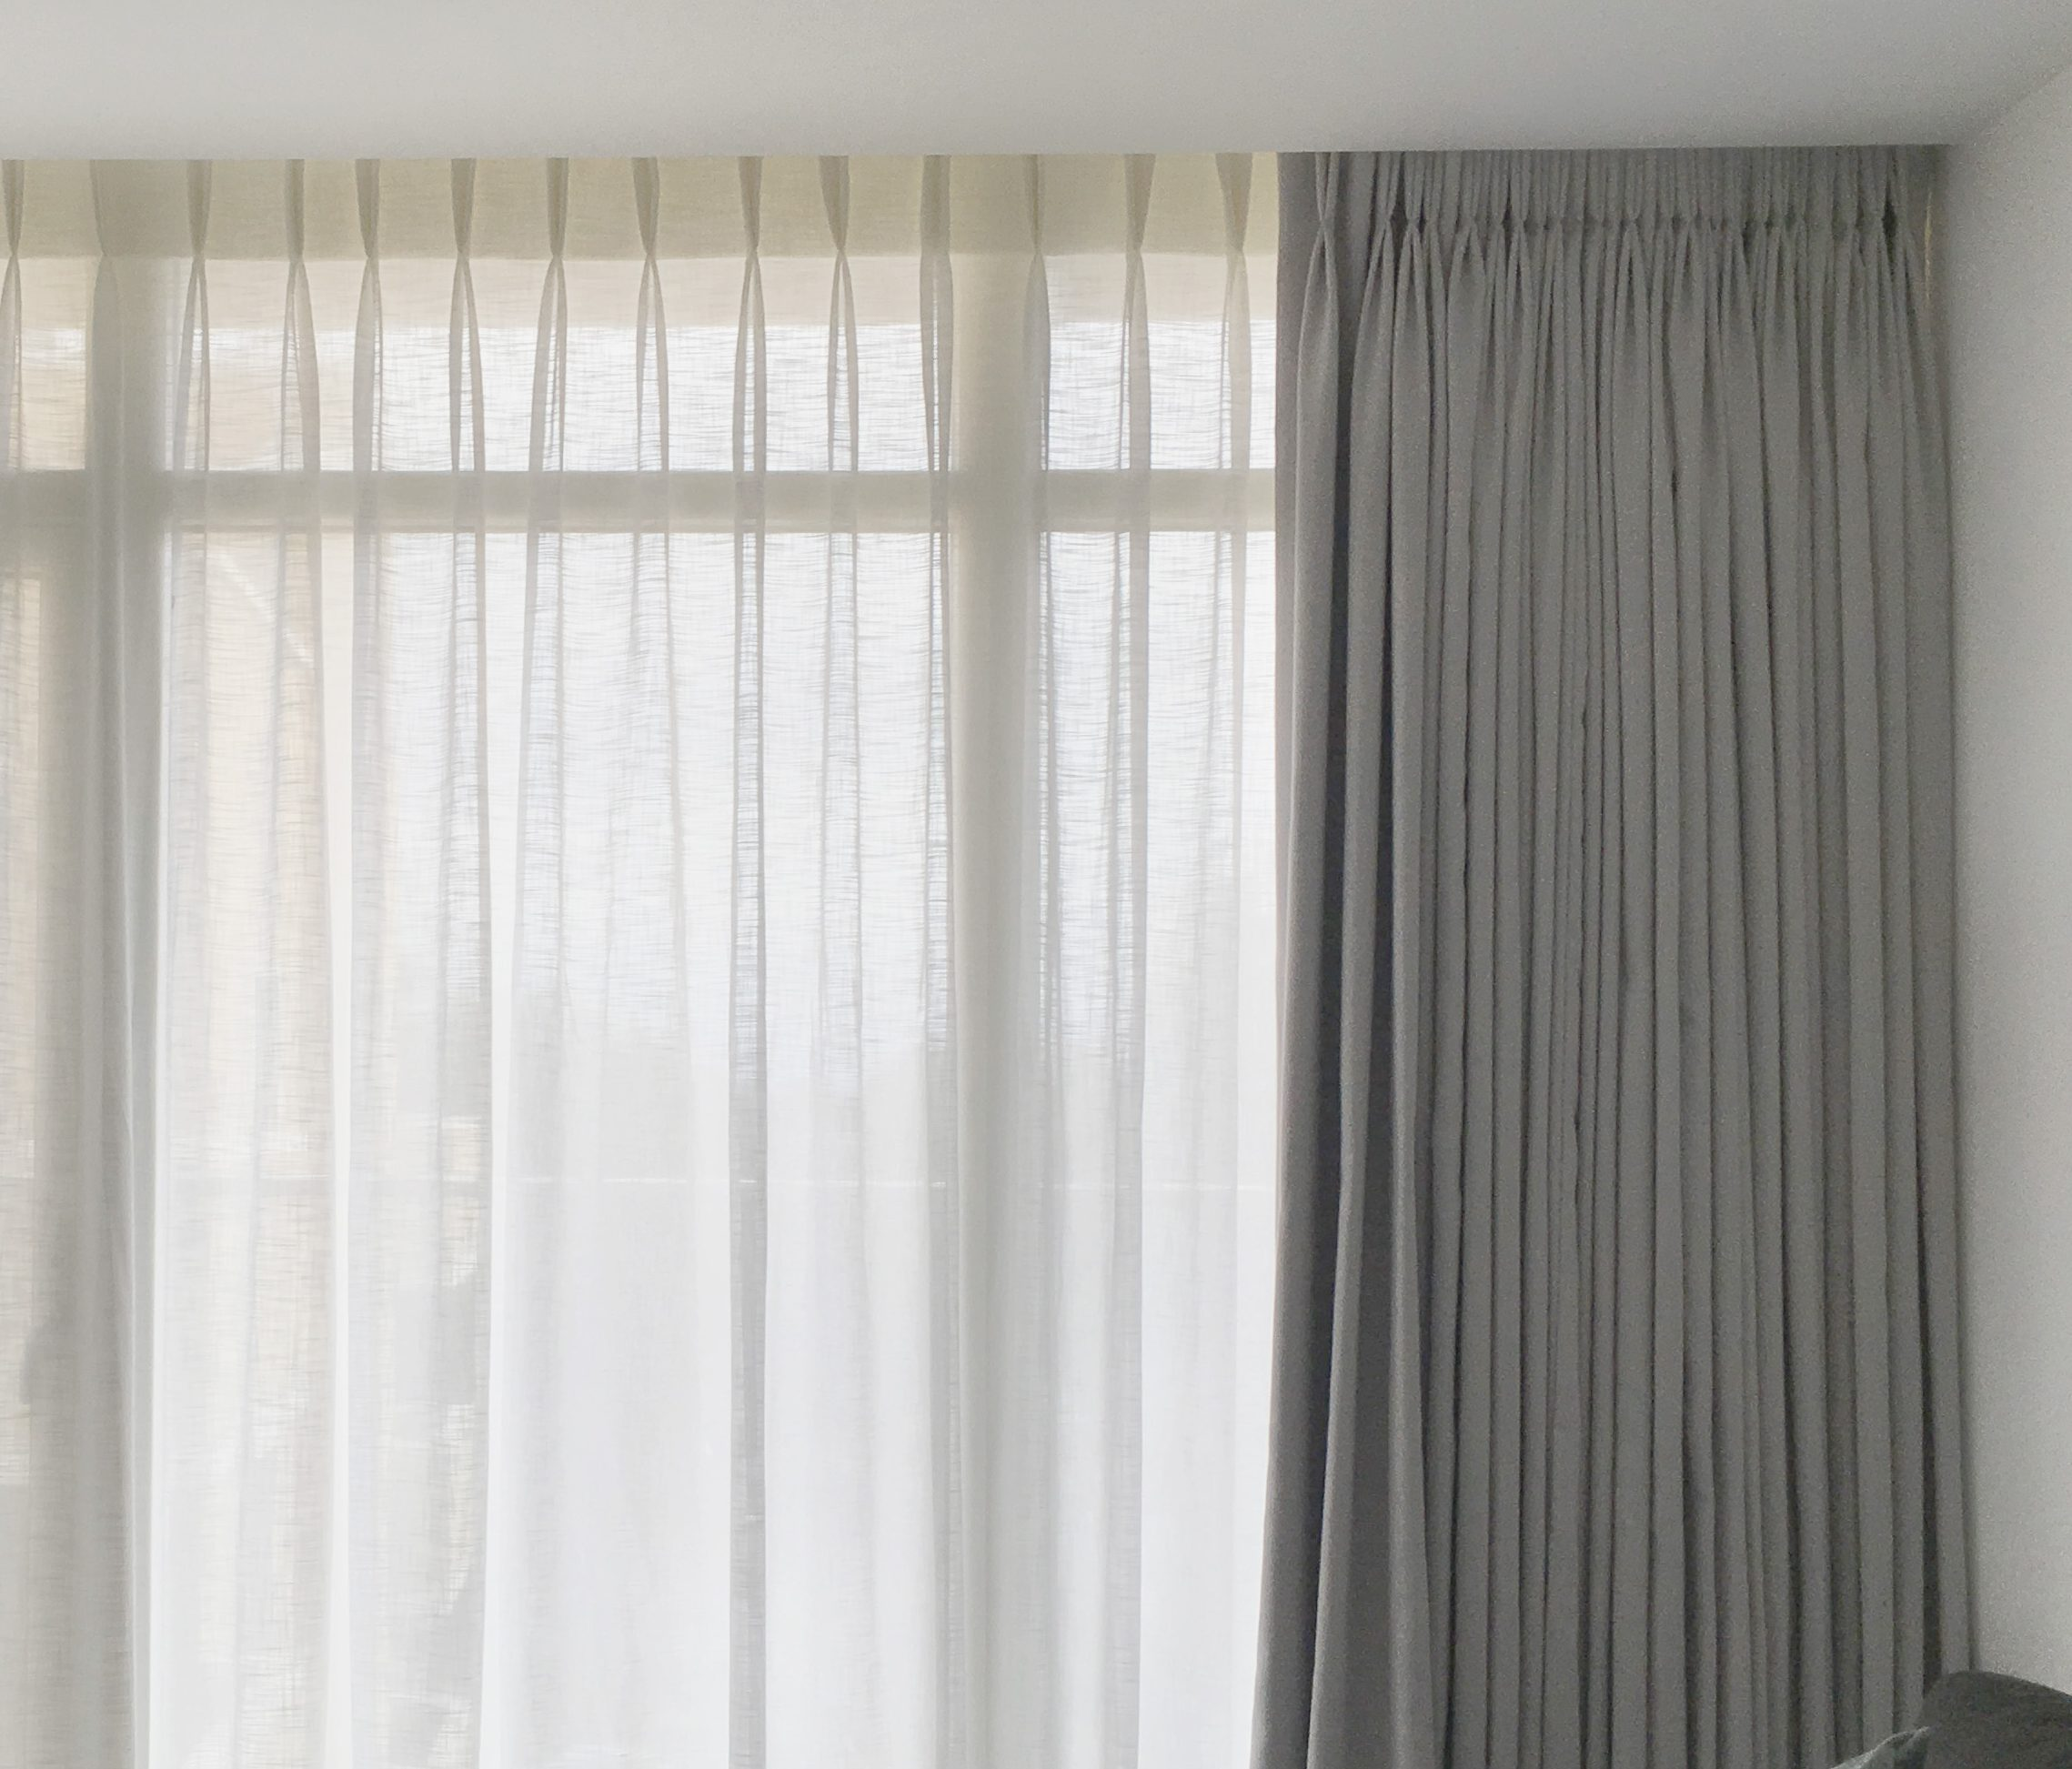 Hand Made Curtain With Pleats